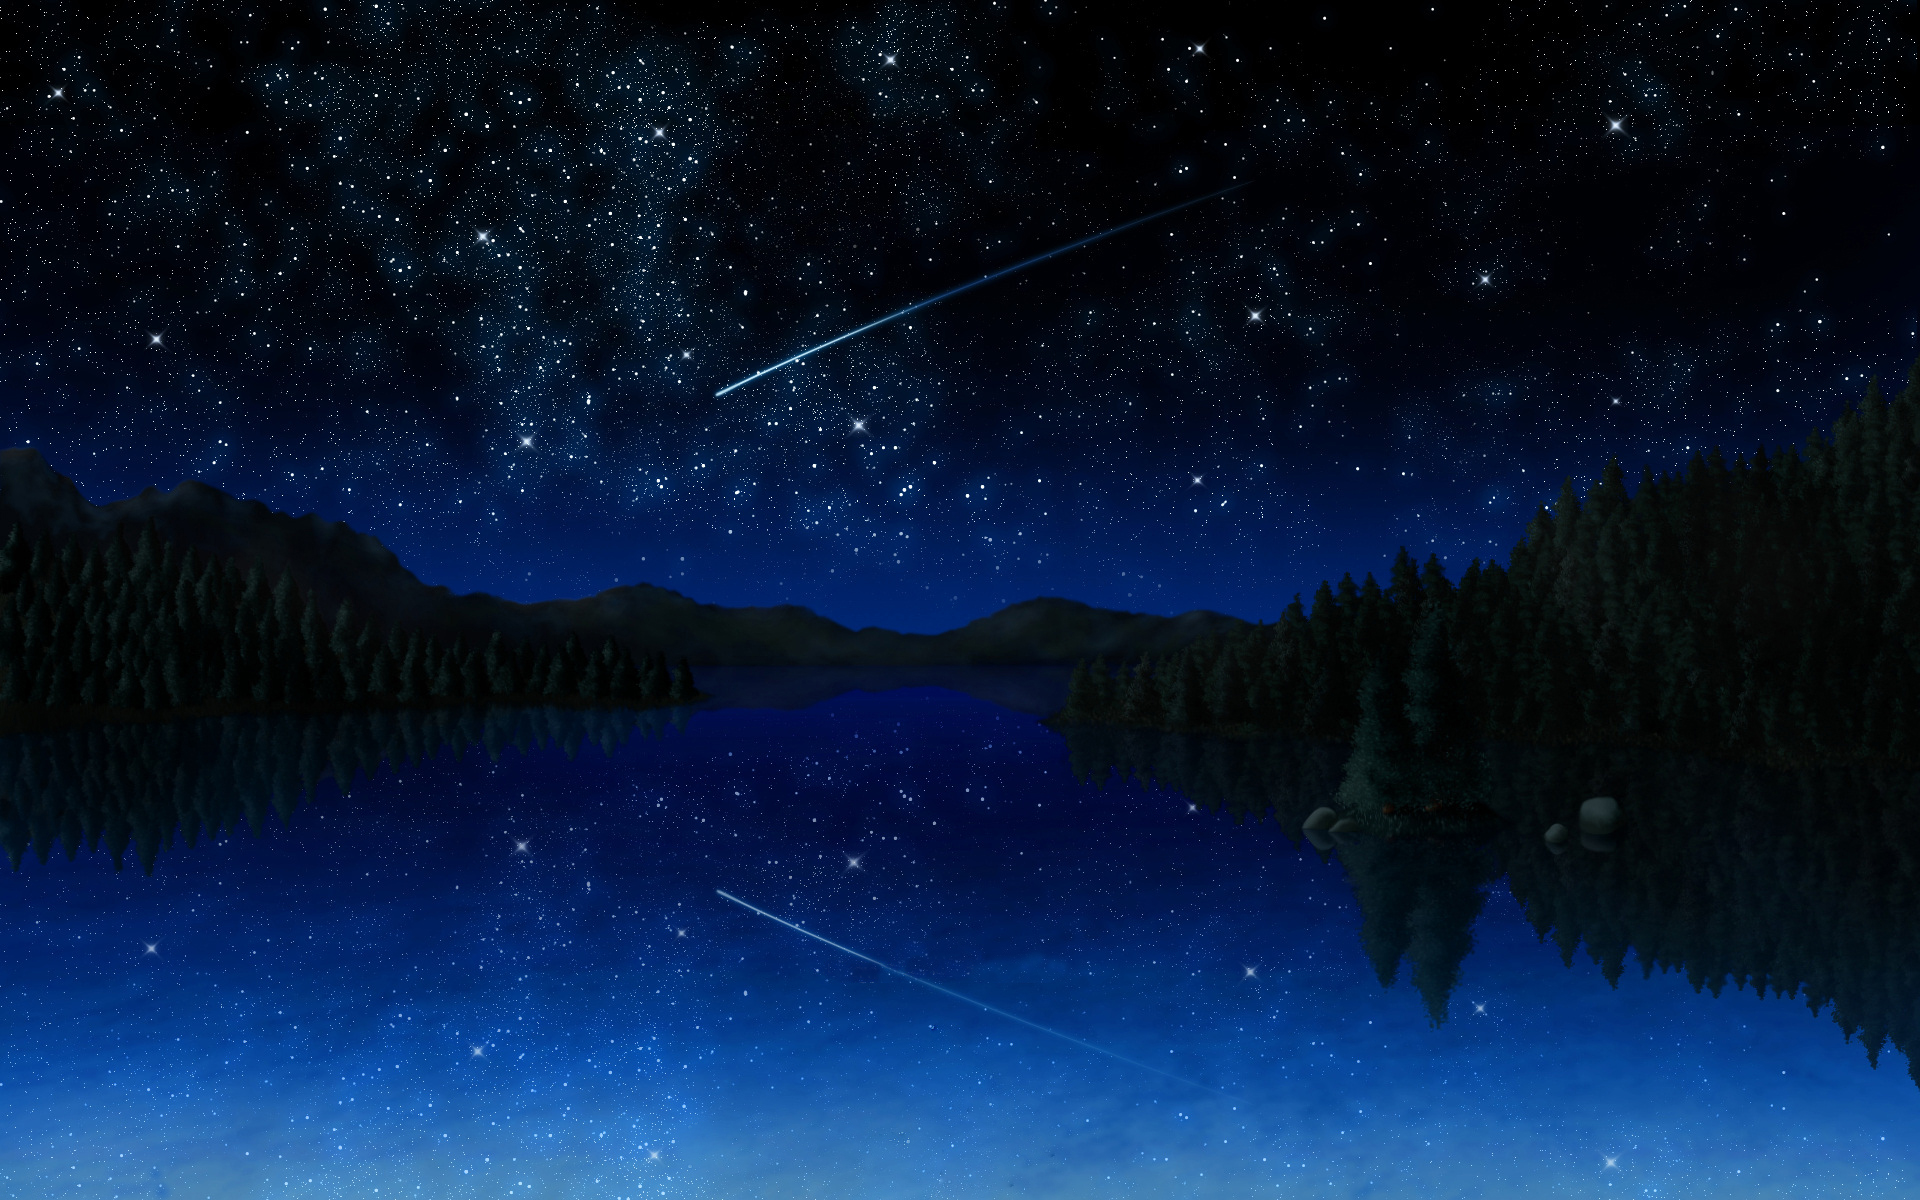 Artistic - Painting  Stars Lake Mountain Artistic Space Wallpaper